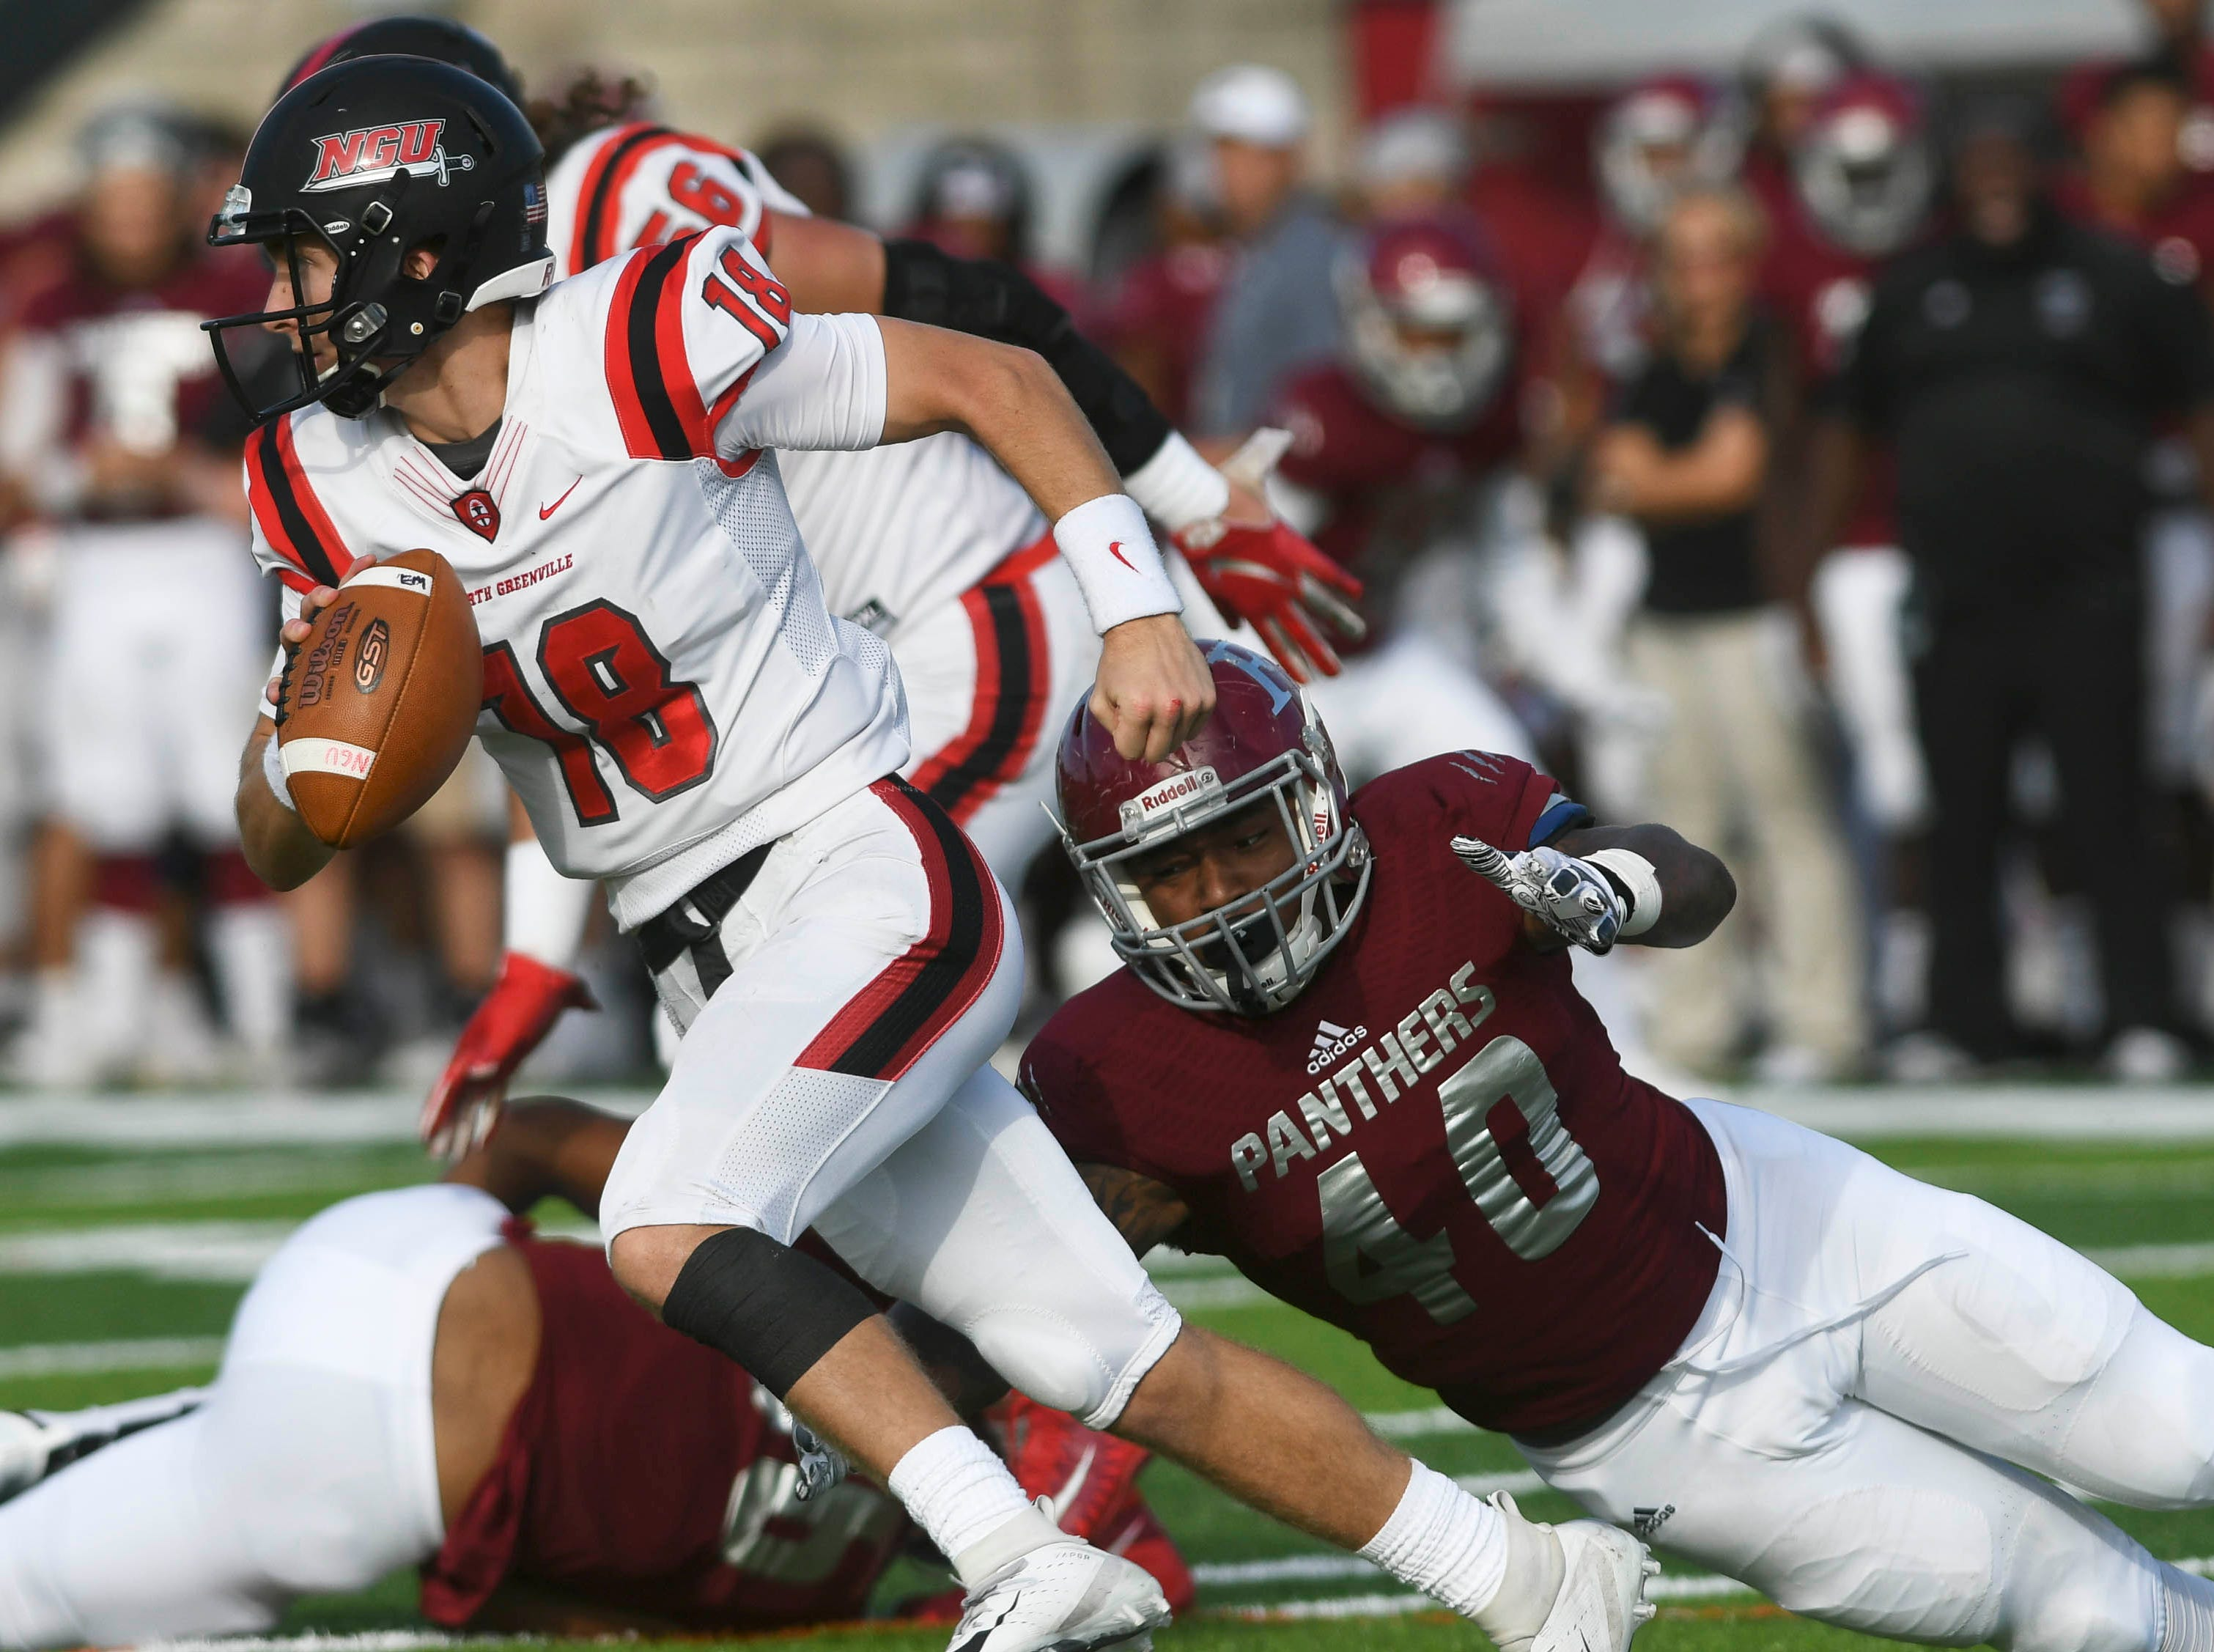 North Greenville QB Donnie Baker is sacked by Shyquan Barnes of Florida Tech during Saturday's game.